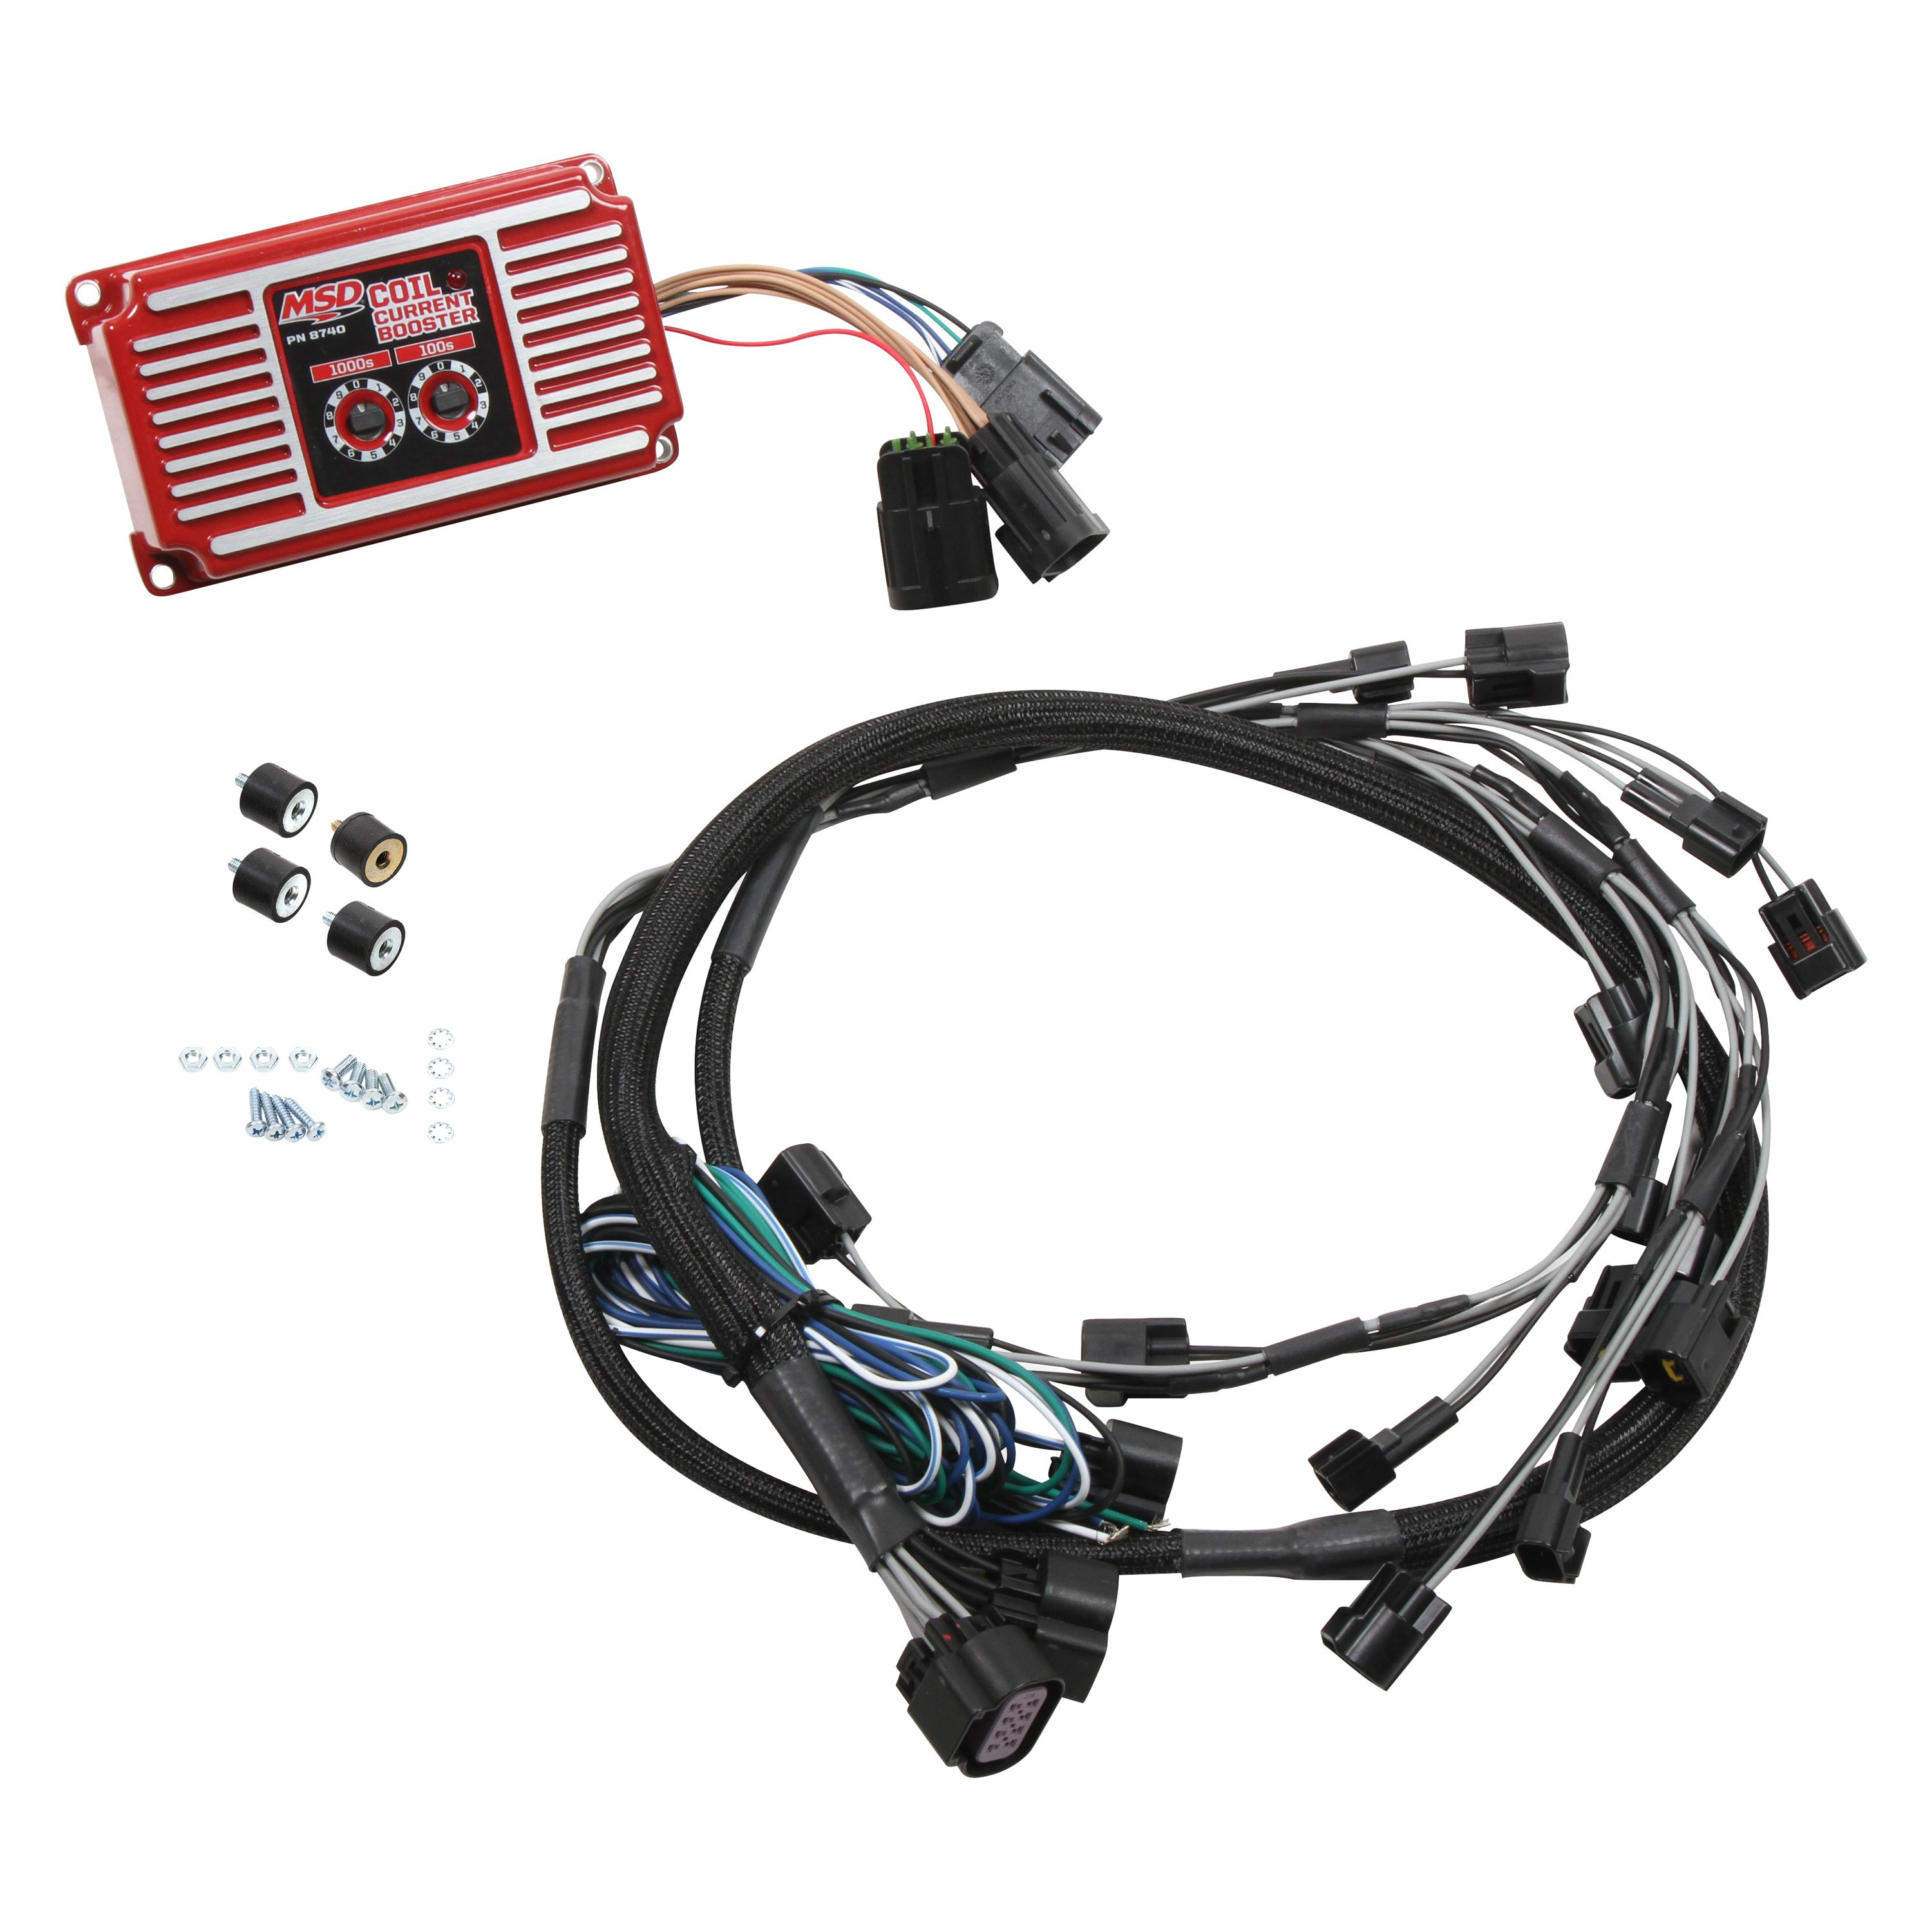 Msd Coil Wire Harness Unlimited Access To Wiring Diagram Information Ignition Systems Diagrams 8740 Current Booster Rh Carid Com Adapter Heat Resistant